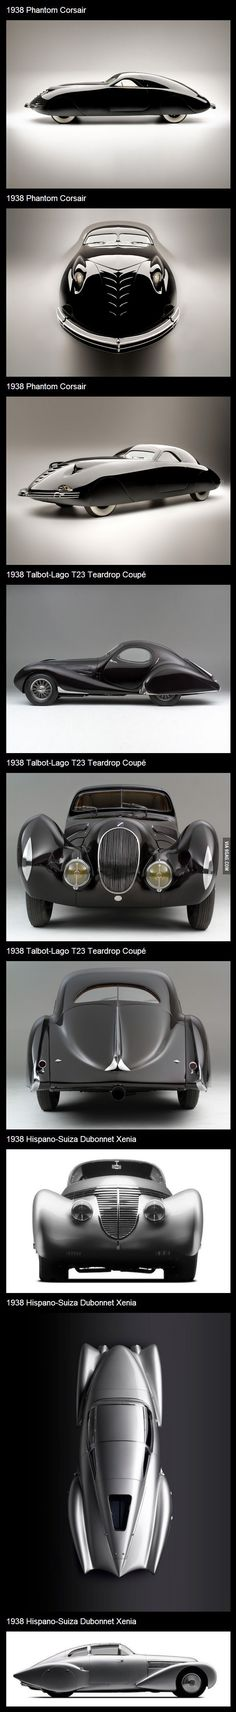 Concept cars from 1938